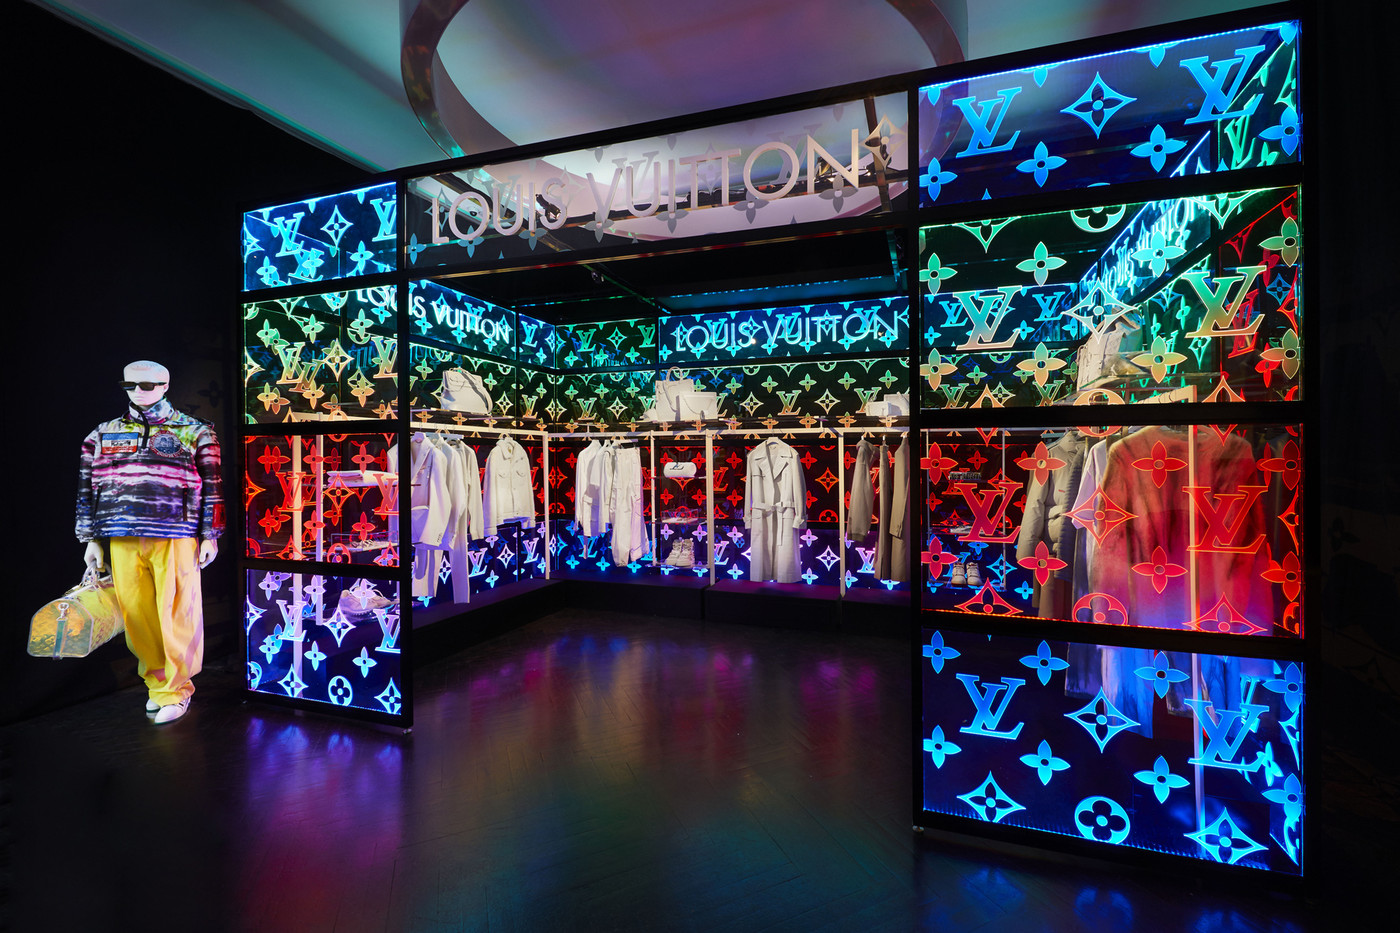 Take a Look into Louis Vuitton's Pop-Up For Virgil Abloh's SS19 Debut Collection